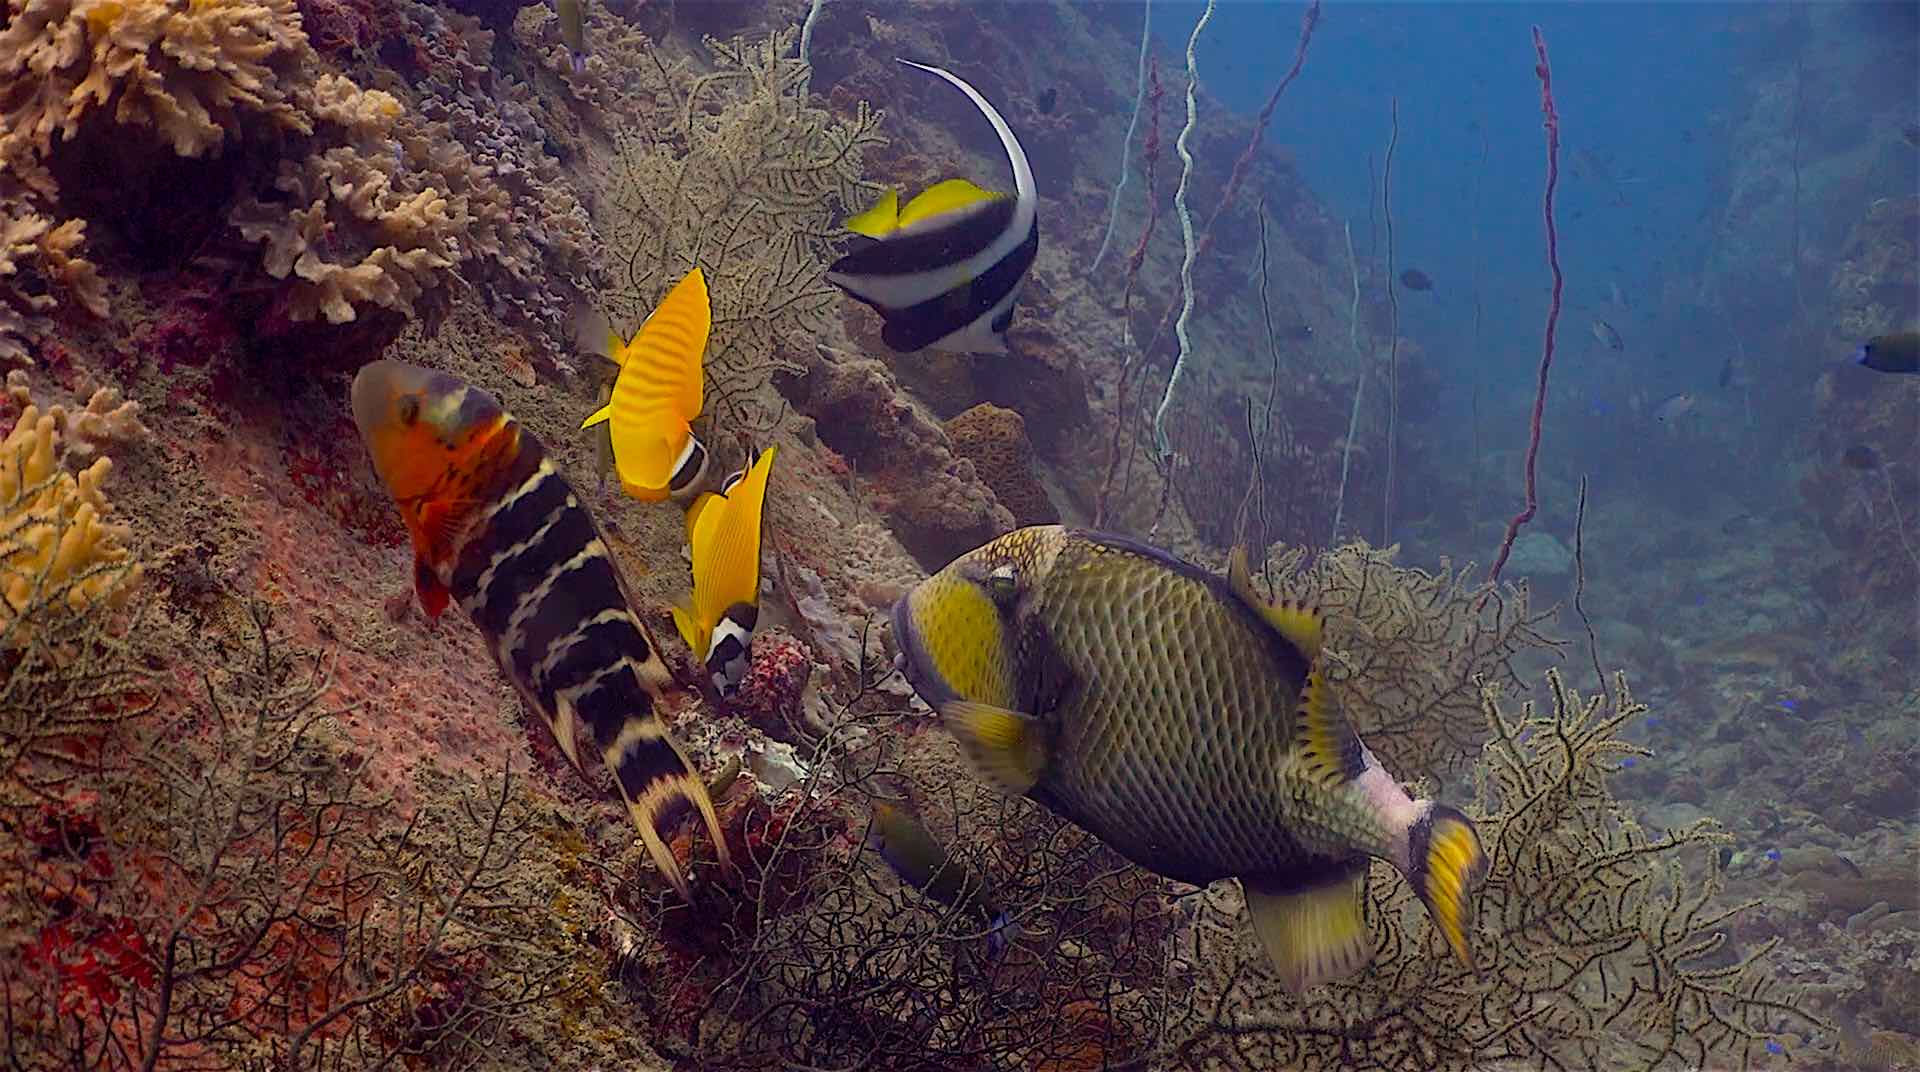 www.thefunkyturtle.com hin wong dive site koh tao trigger fish